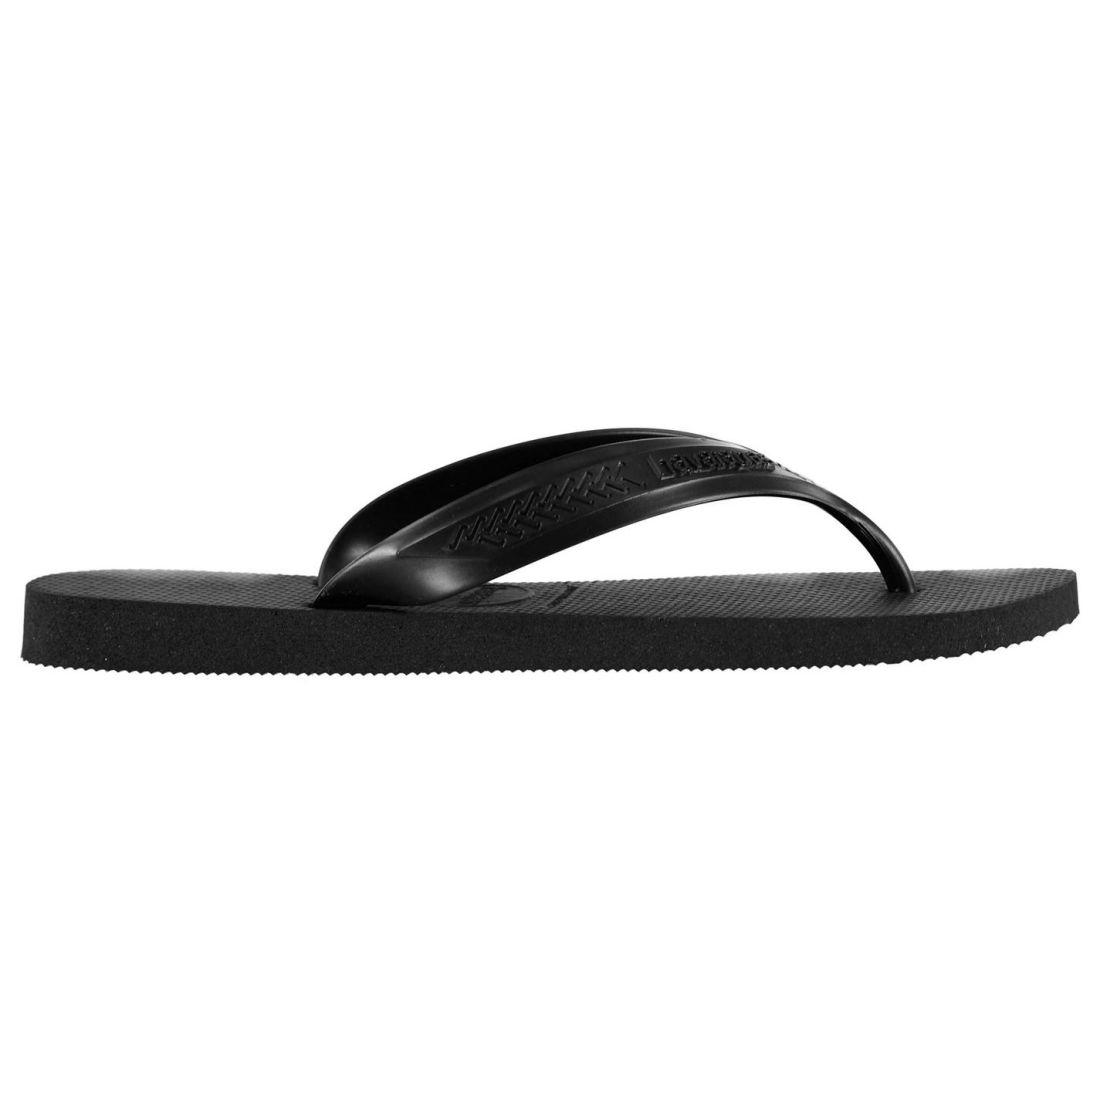 5608dfcb799a71 Image is loading Havaianas-Mens-Top-Max-Flip-Flops